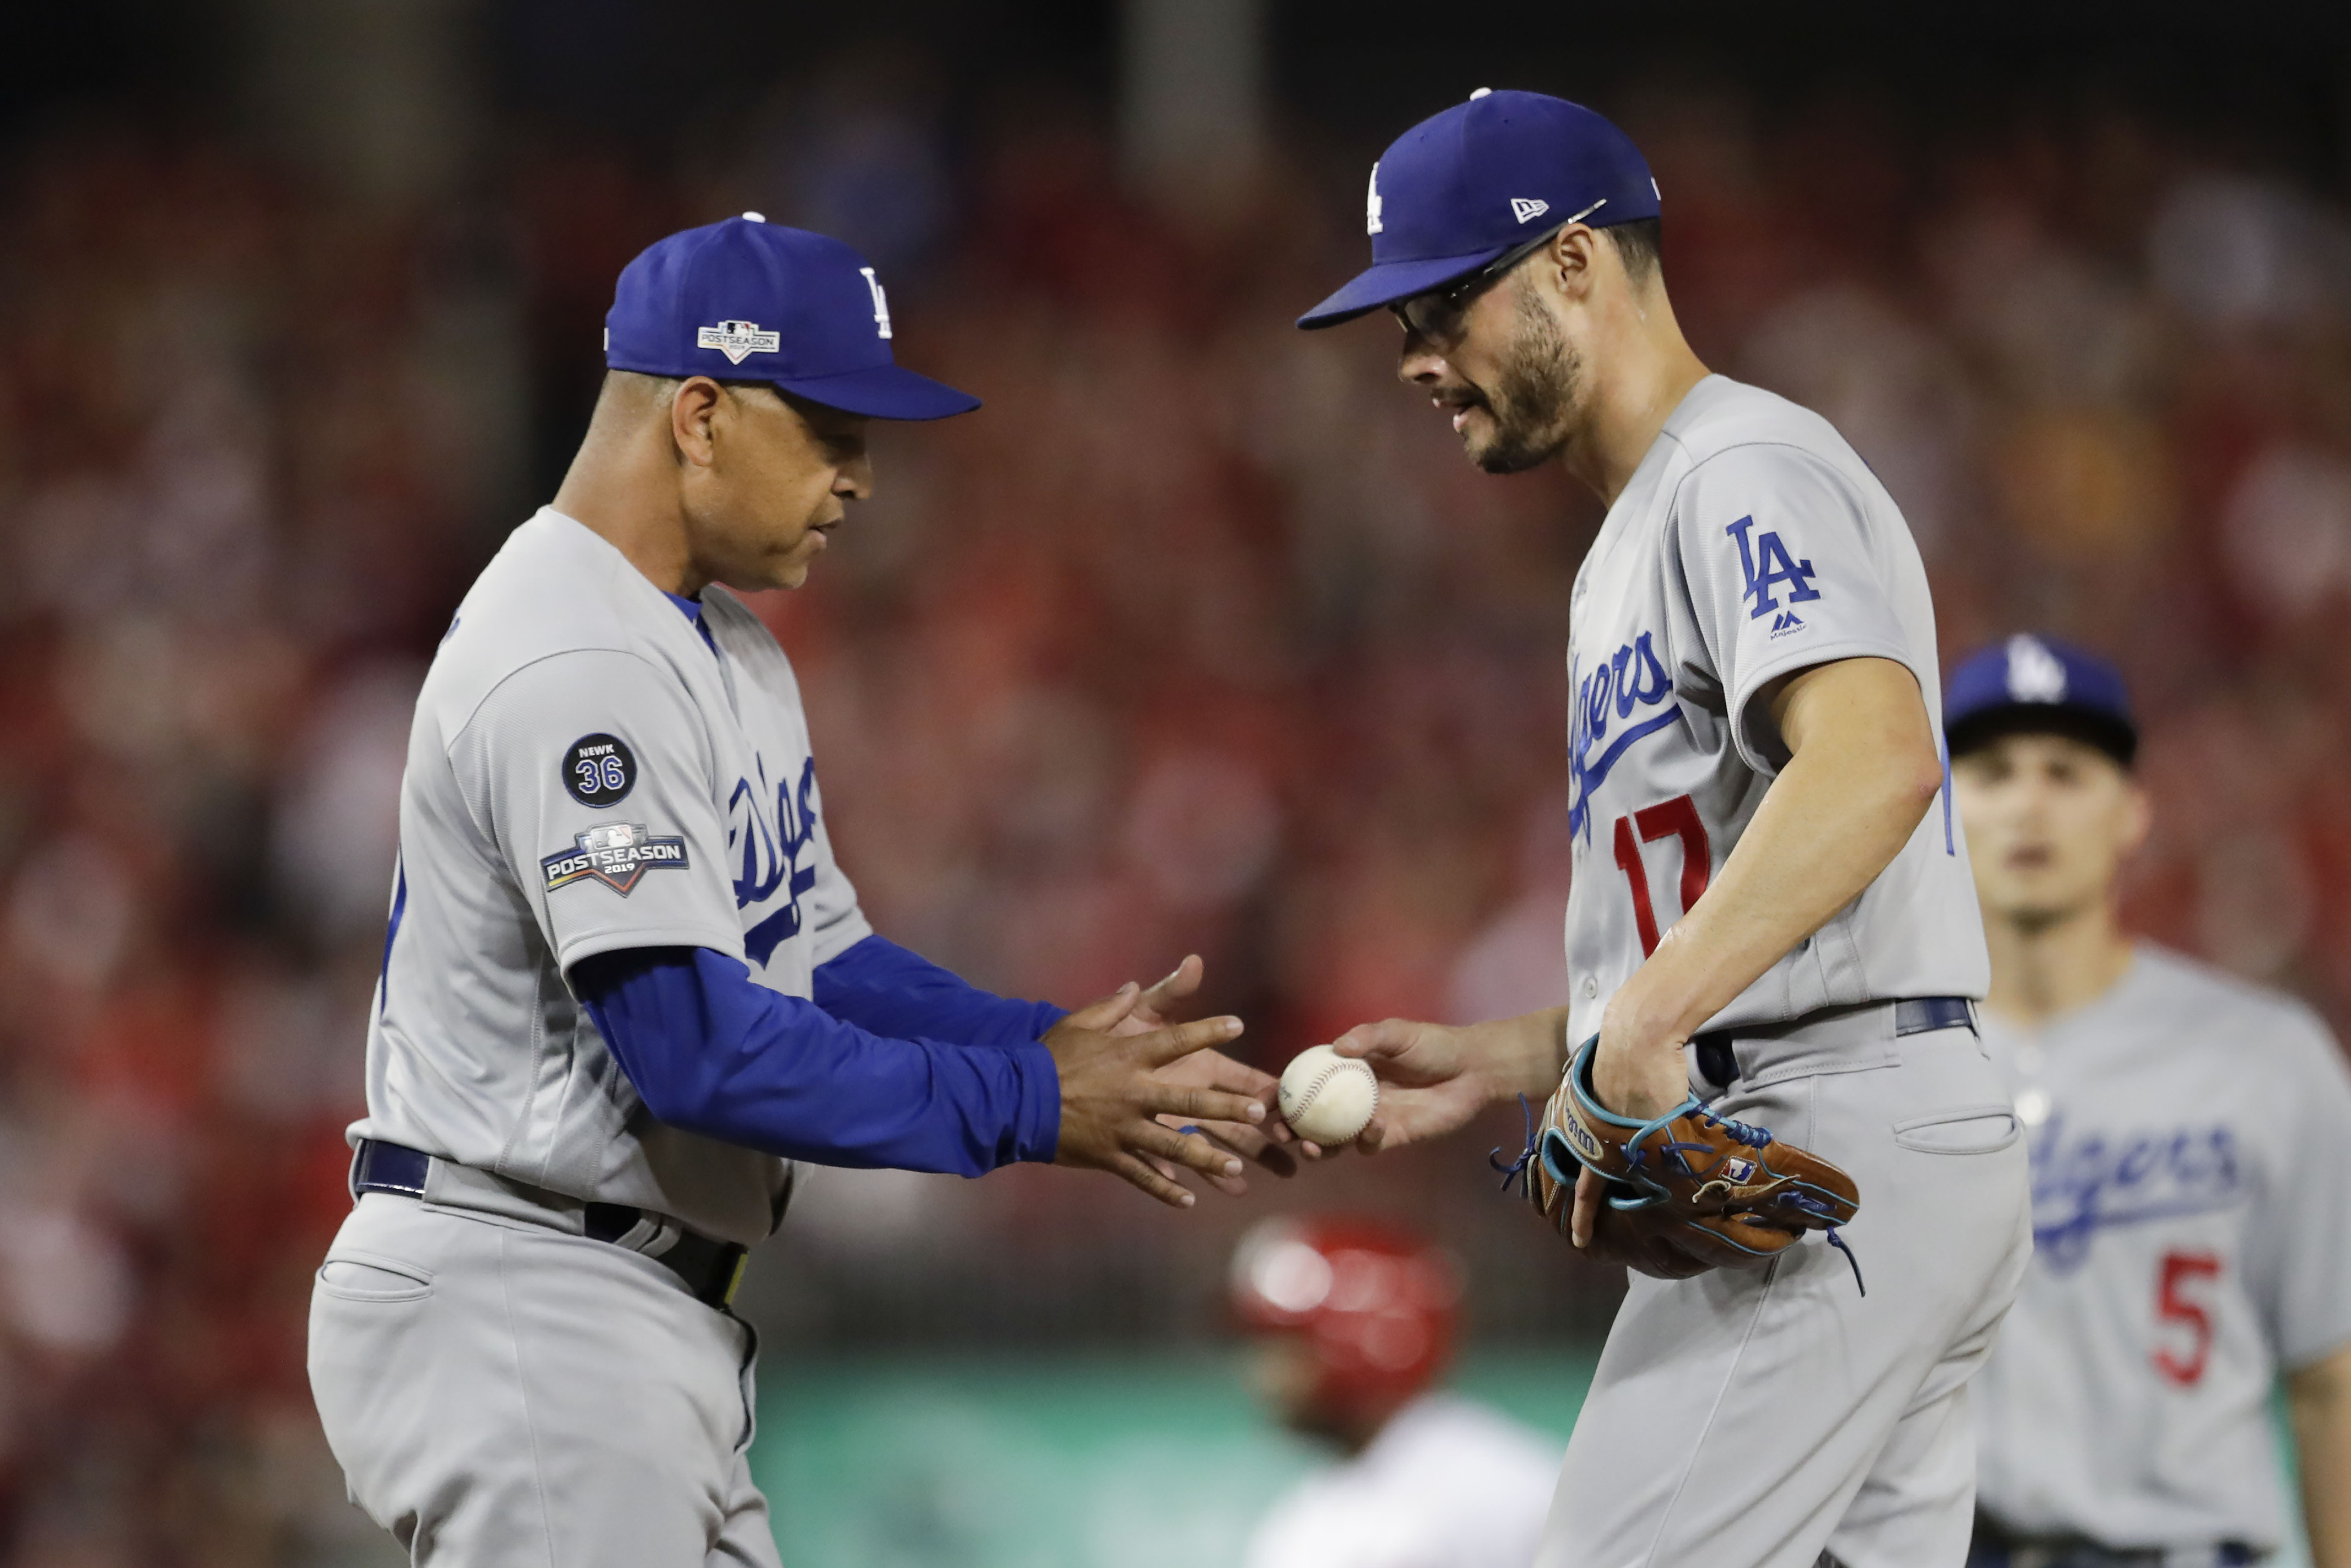 Ex Boston Red Sox Joe Kelly Who Has Unknown Injury Gives Up Two Runs In Wild Nlds Game 3 Outing But Dodgers Win Masslive Com Well, this one got interesting. 2